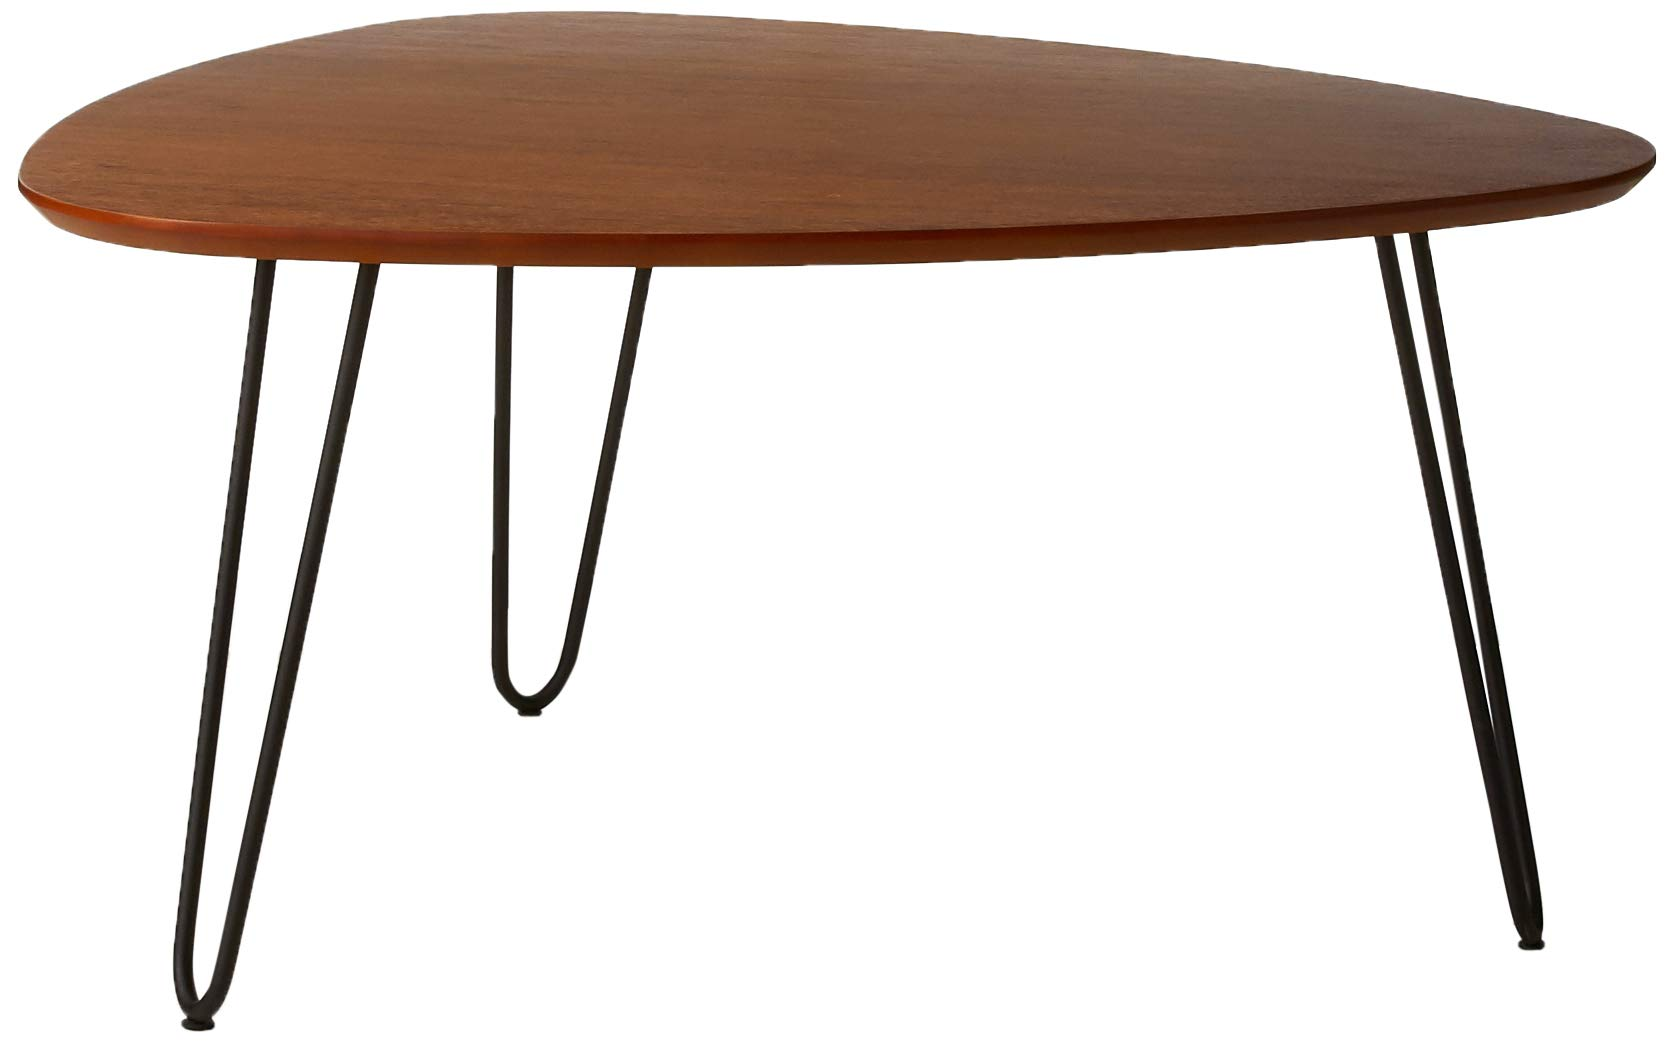 WE Furniture 32'' Walnut Wood Mid Century Modern Round Coffee Table Metal Hairpin Legs Simplistic Cocktail Table by WE Furniture